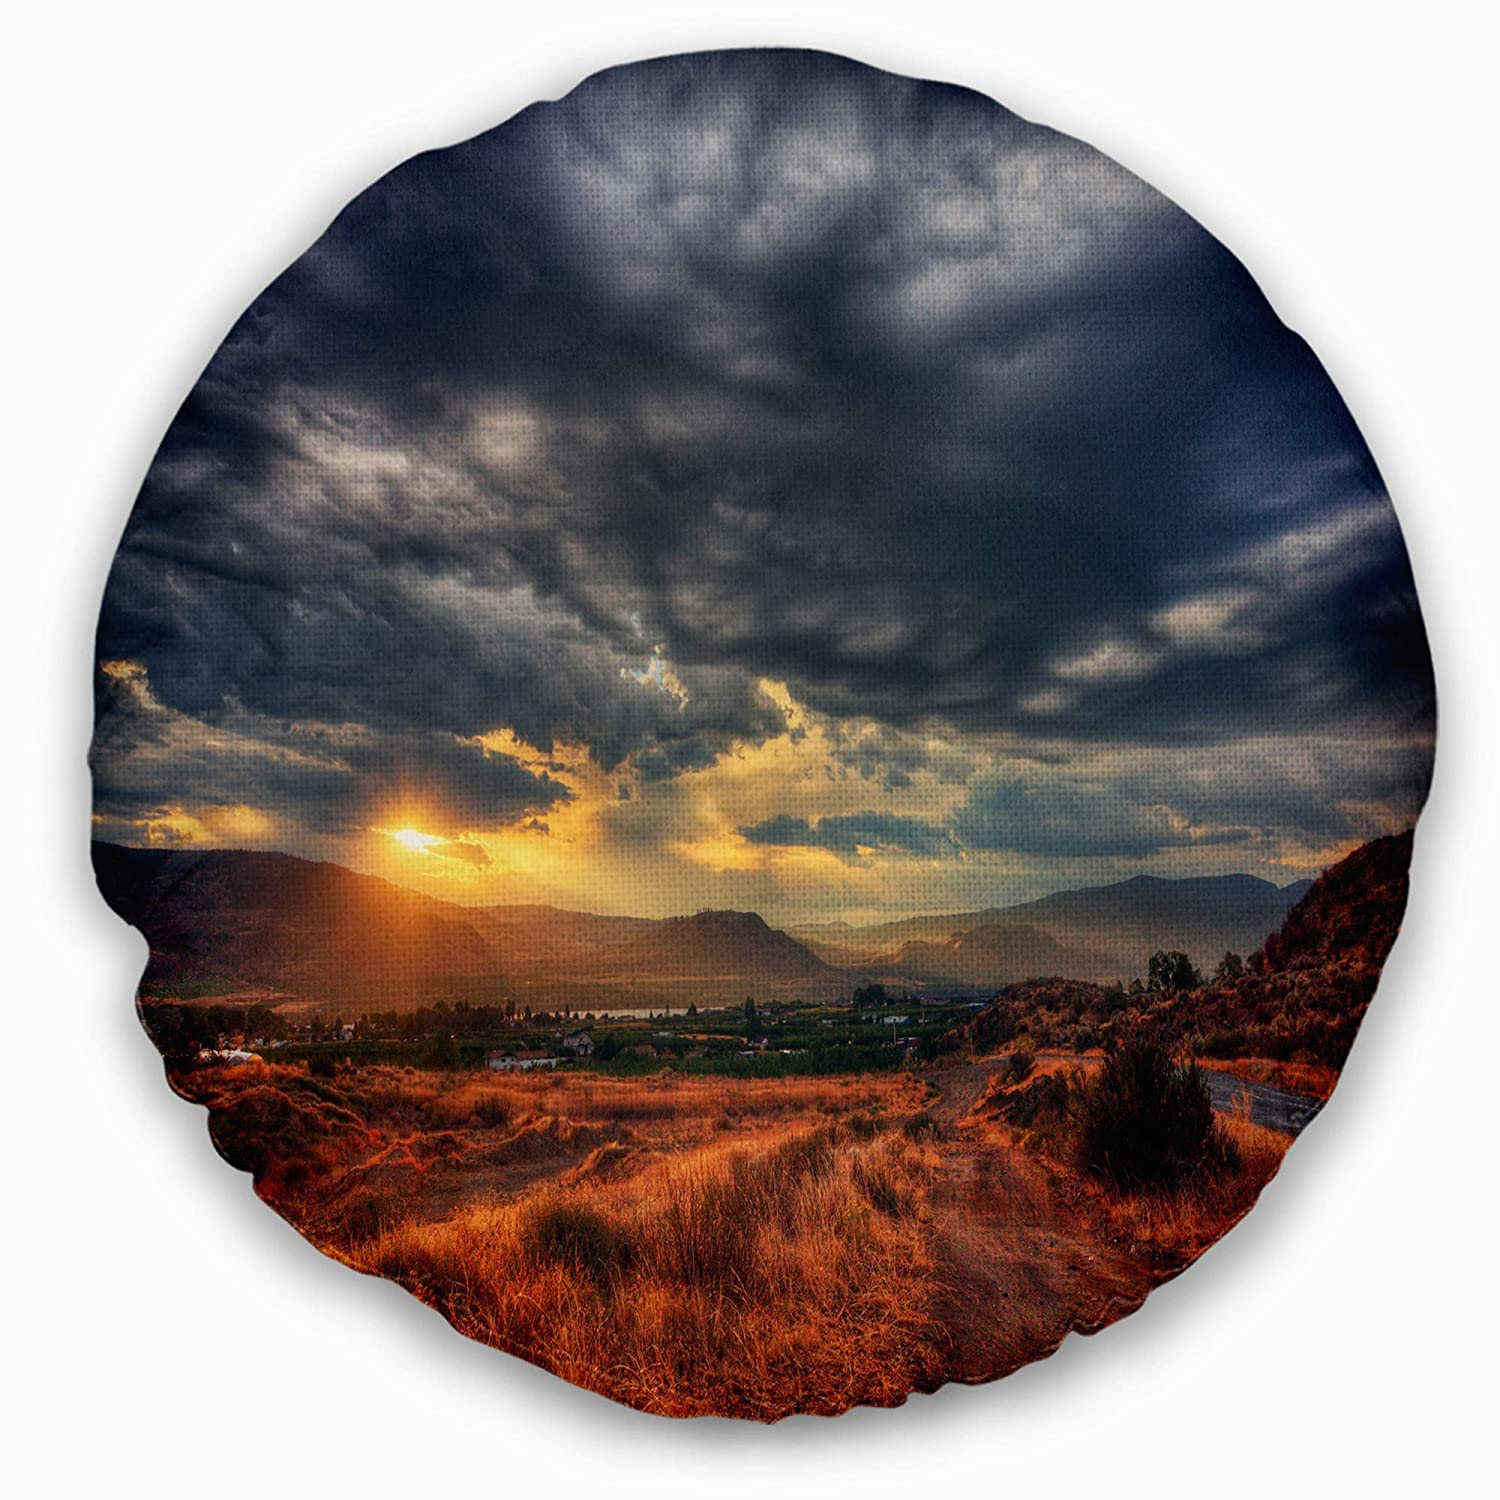 Designart CU14447-16-16-C Beautiful Sunrise in Osoyoos' Landscape Printed Round Cushion Cover for Living Room, Sofa Throw Pillow 16', Insert Side